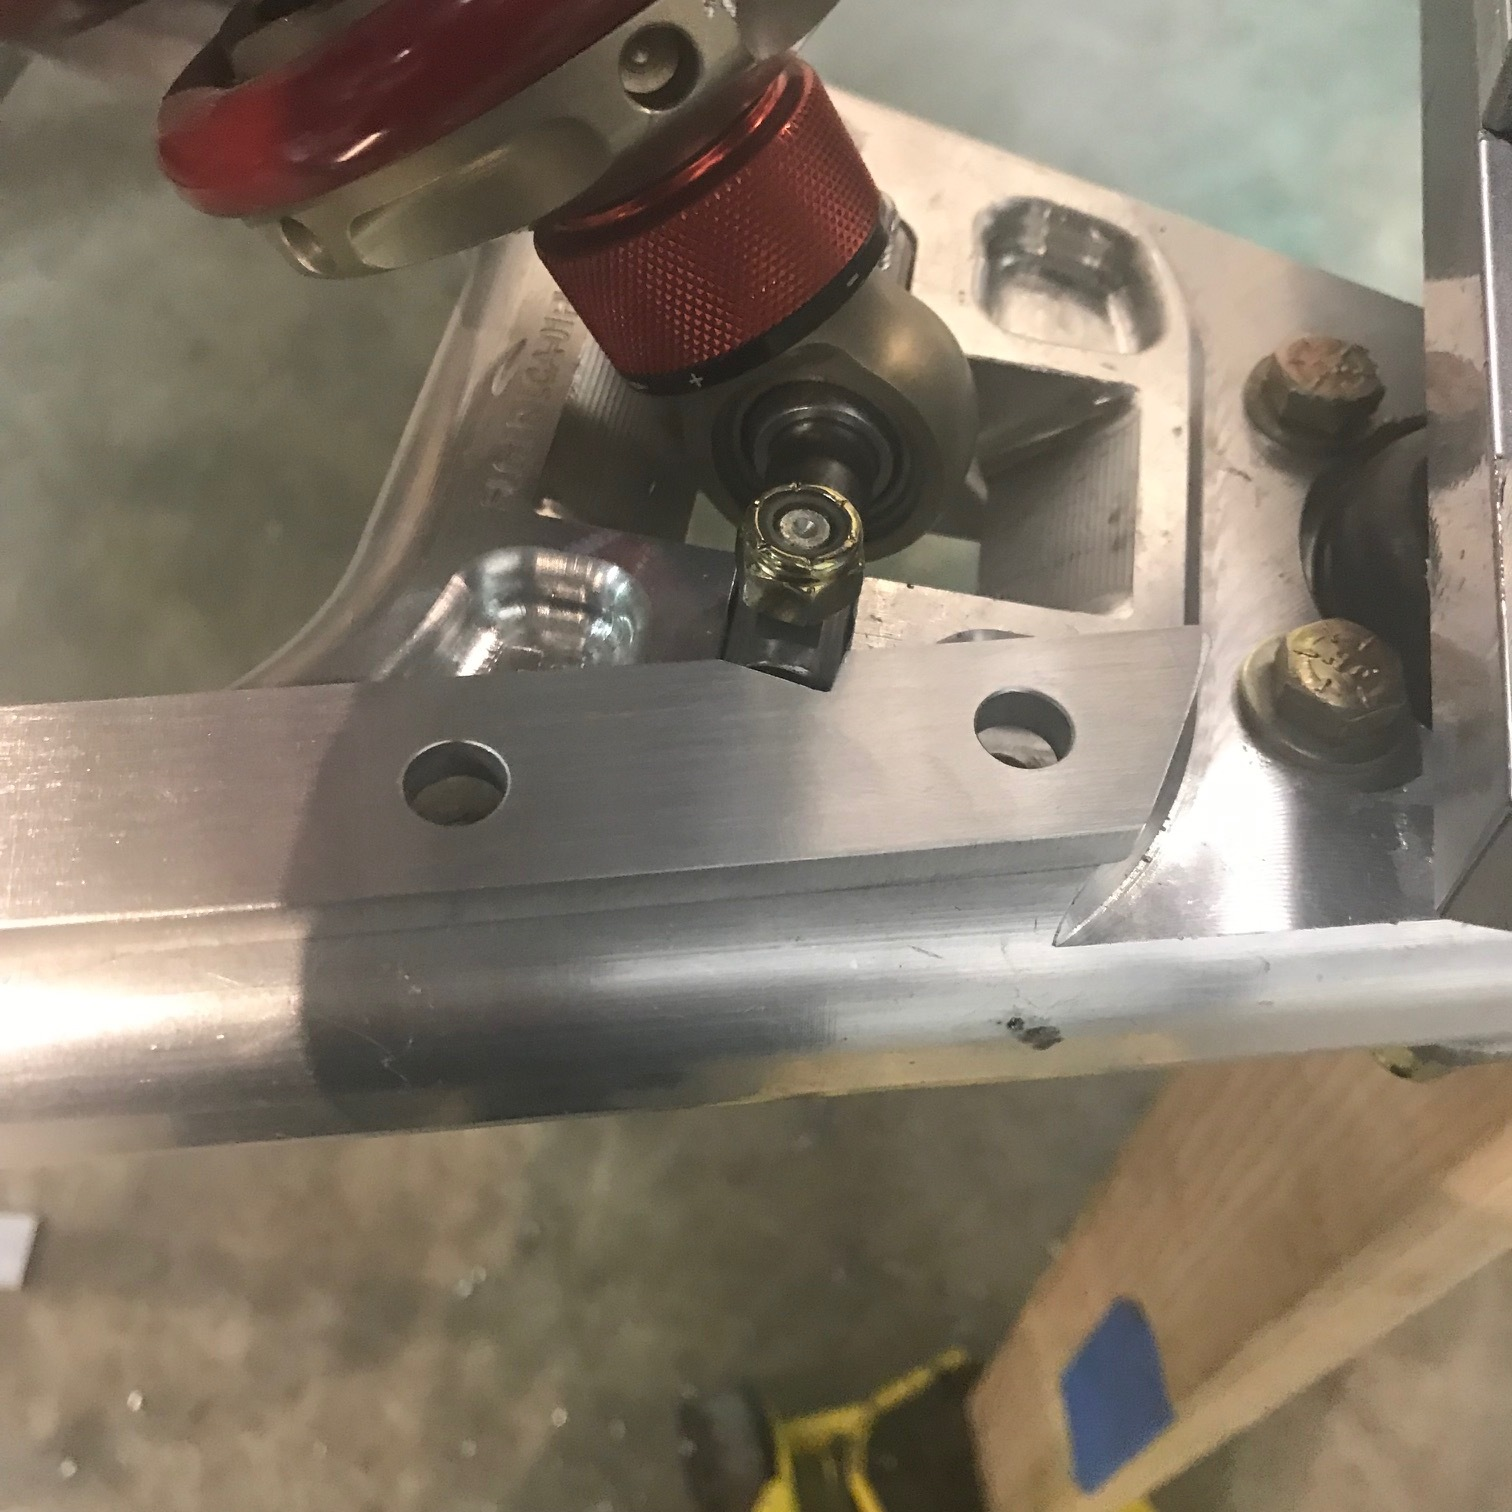 Spacer notched around shock mounting pin